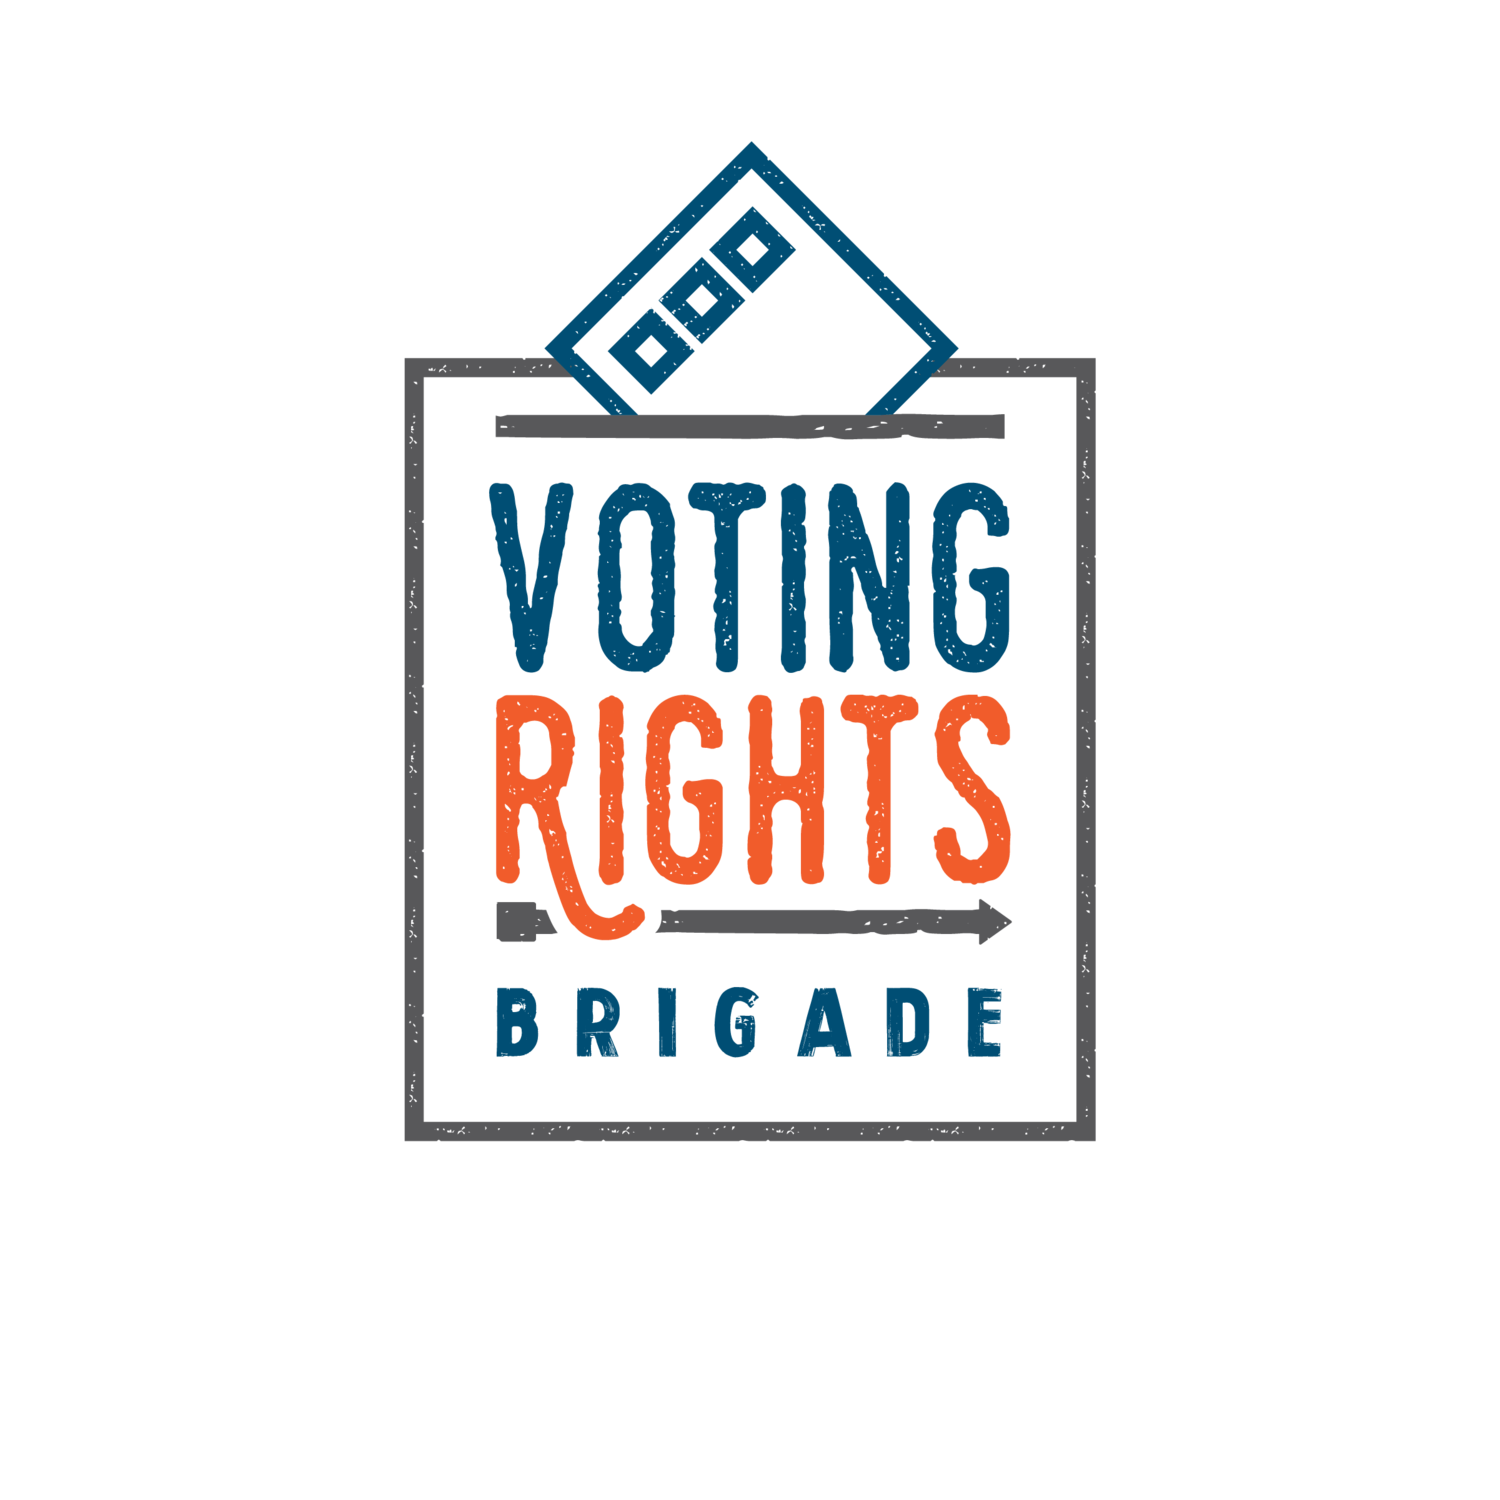 Voting drawing rights act. Our story brigade